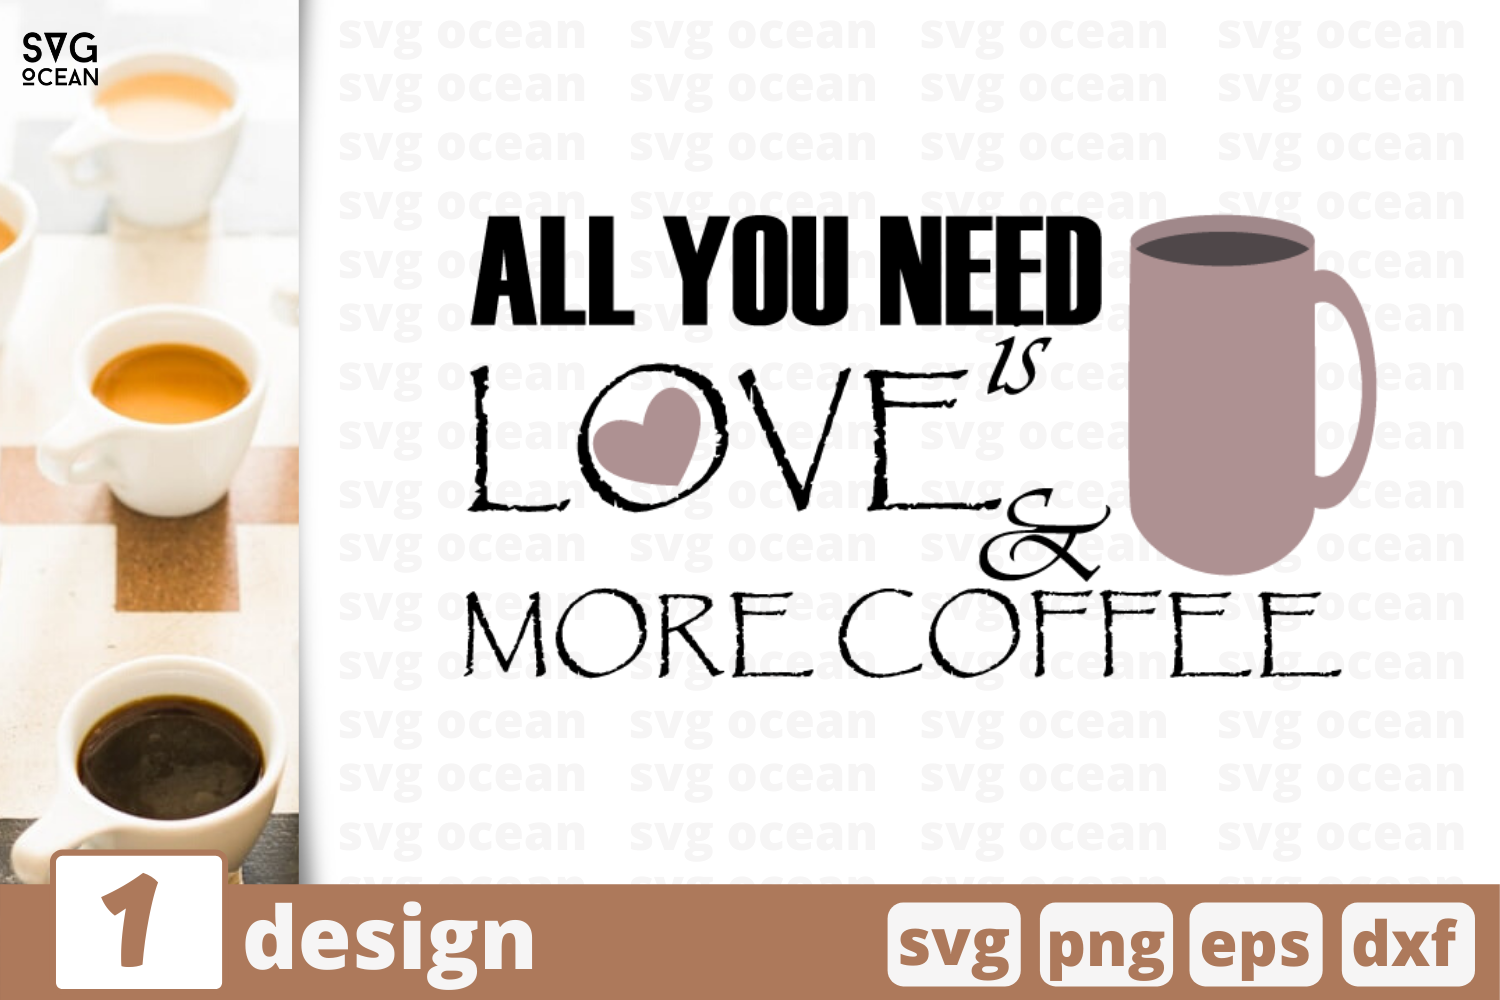 1 Love More Coffee Svg Bundle Quotes Cricut Svg By Svgocean